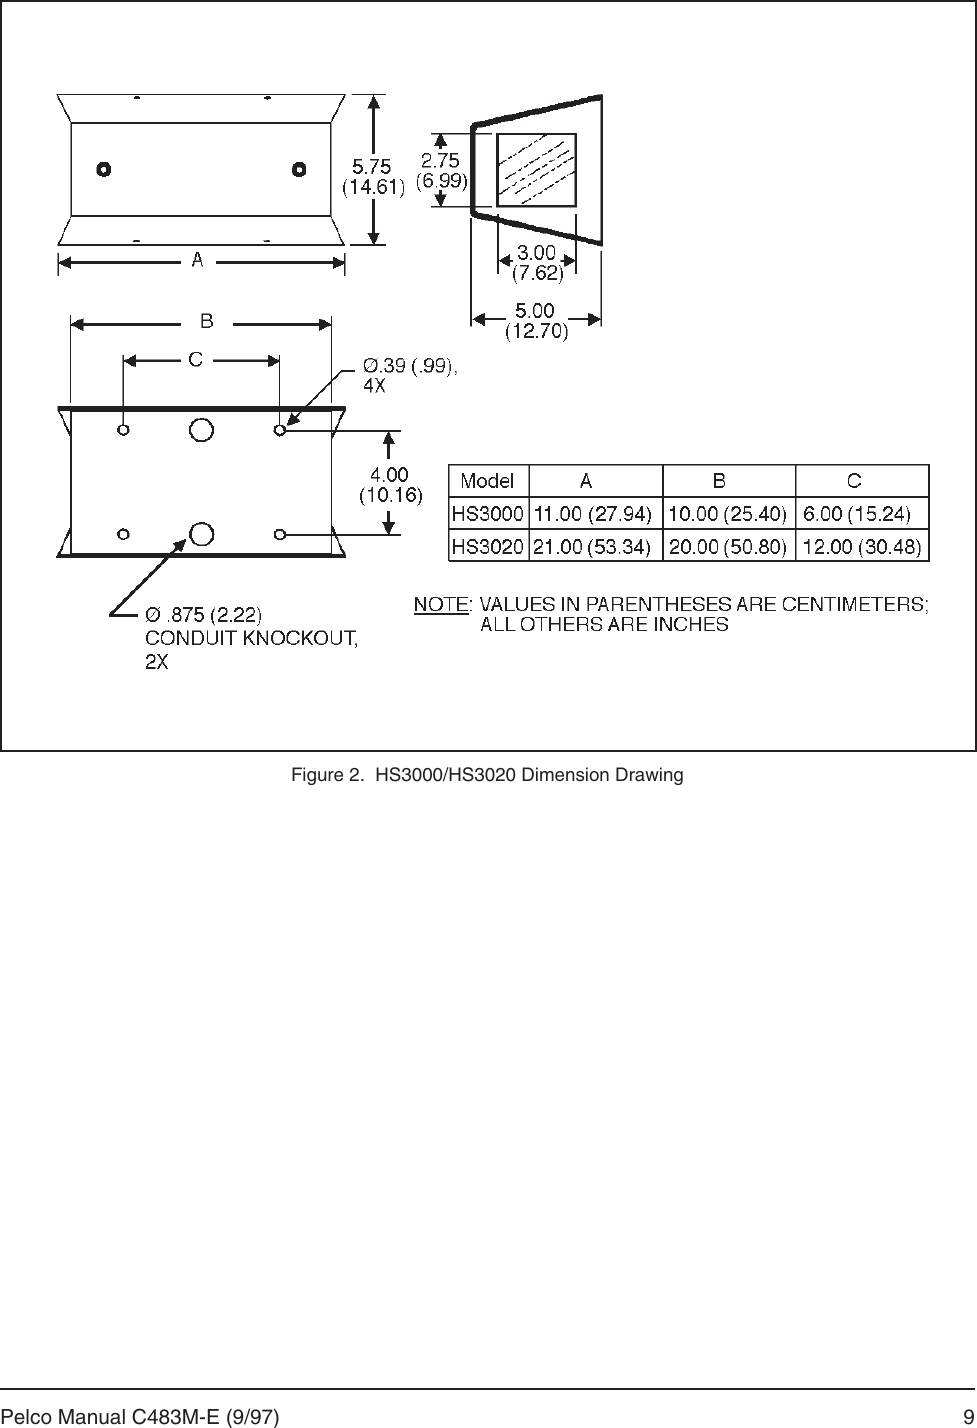 hight resolution of page 11 of 12 pelco pelco pelco security camera hs3020